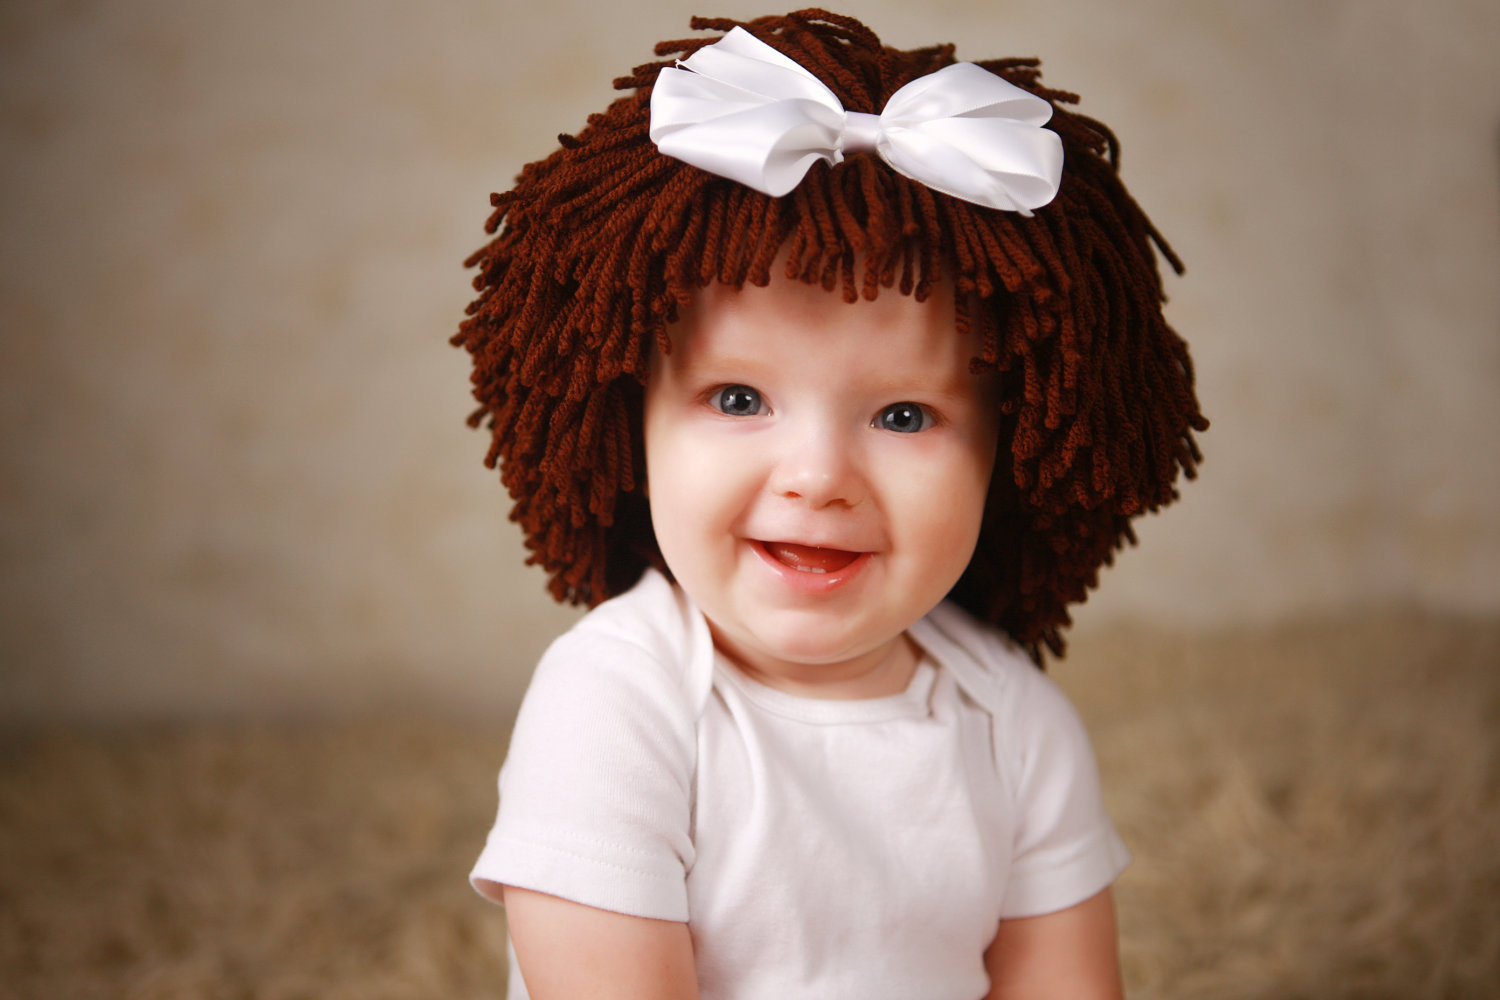 If you want to have your kid look like an adorable cabbage patch doll, check out these ideas on how to make your own crochet cabbage patch wigs. We have the best ideas for DIY cabbage patch doll wigs!